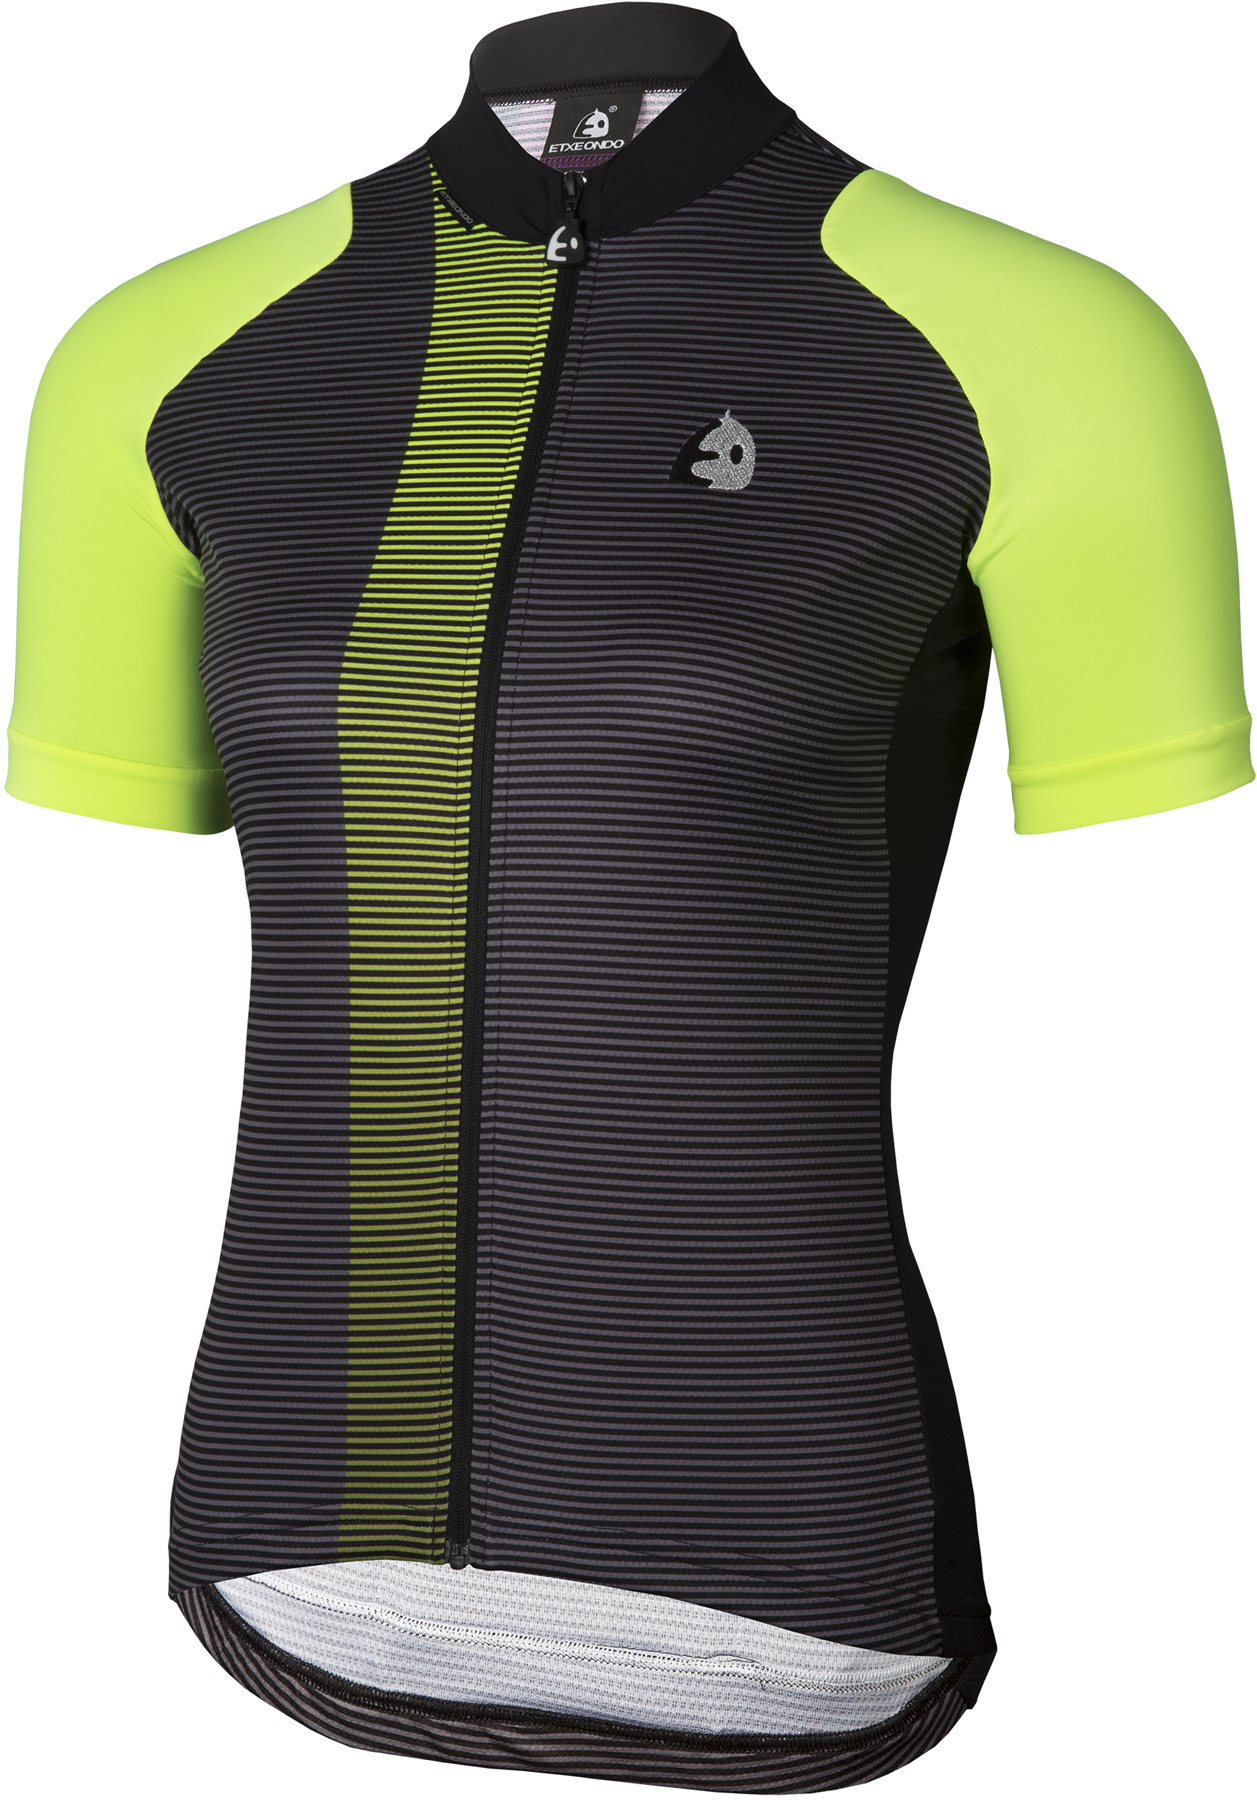 Etxeondo Women's Gure Short Sleeve Jersey | Jerseys